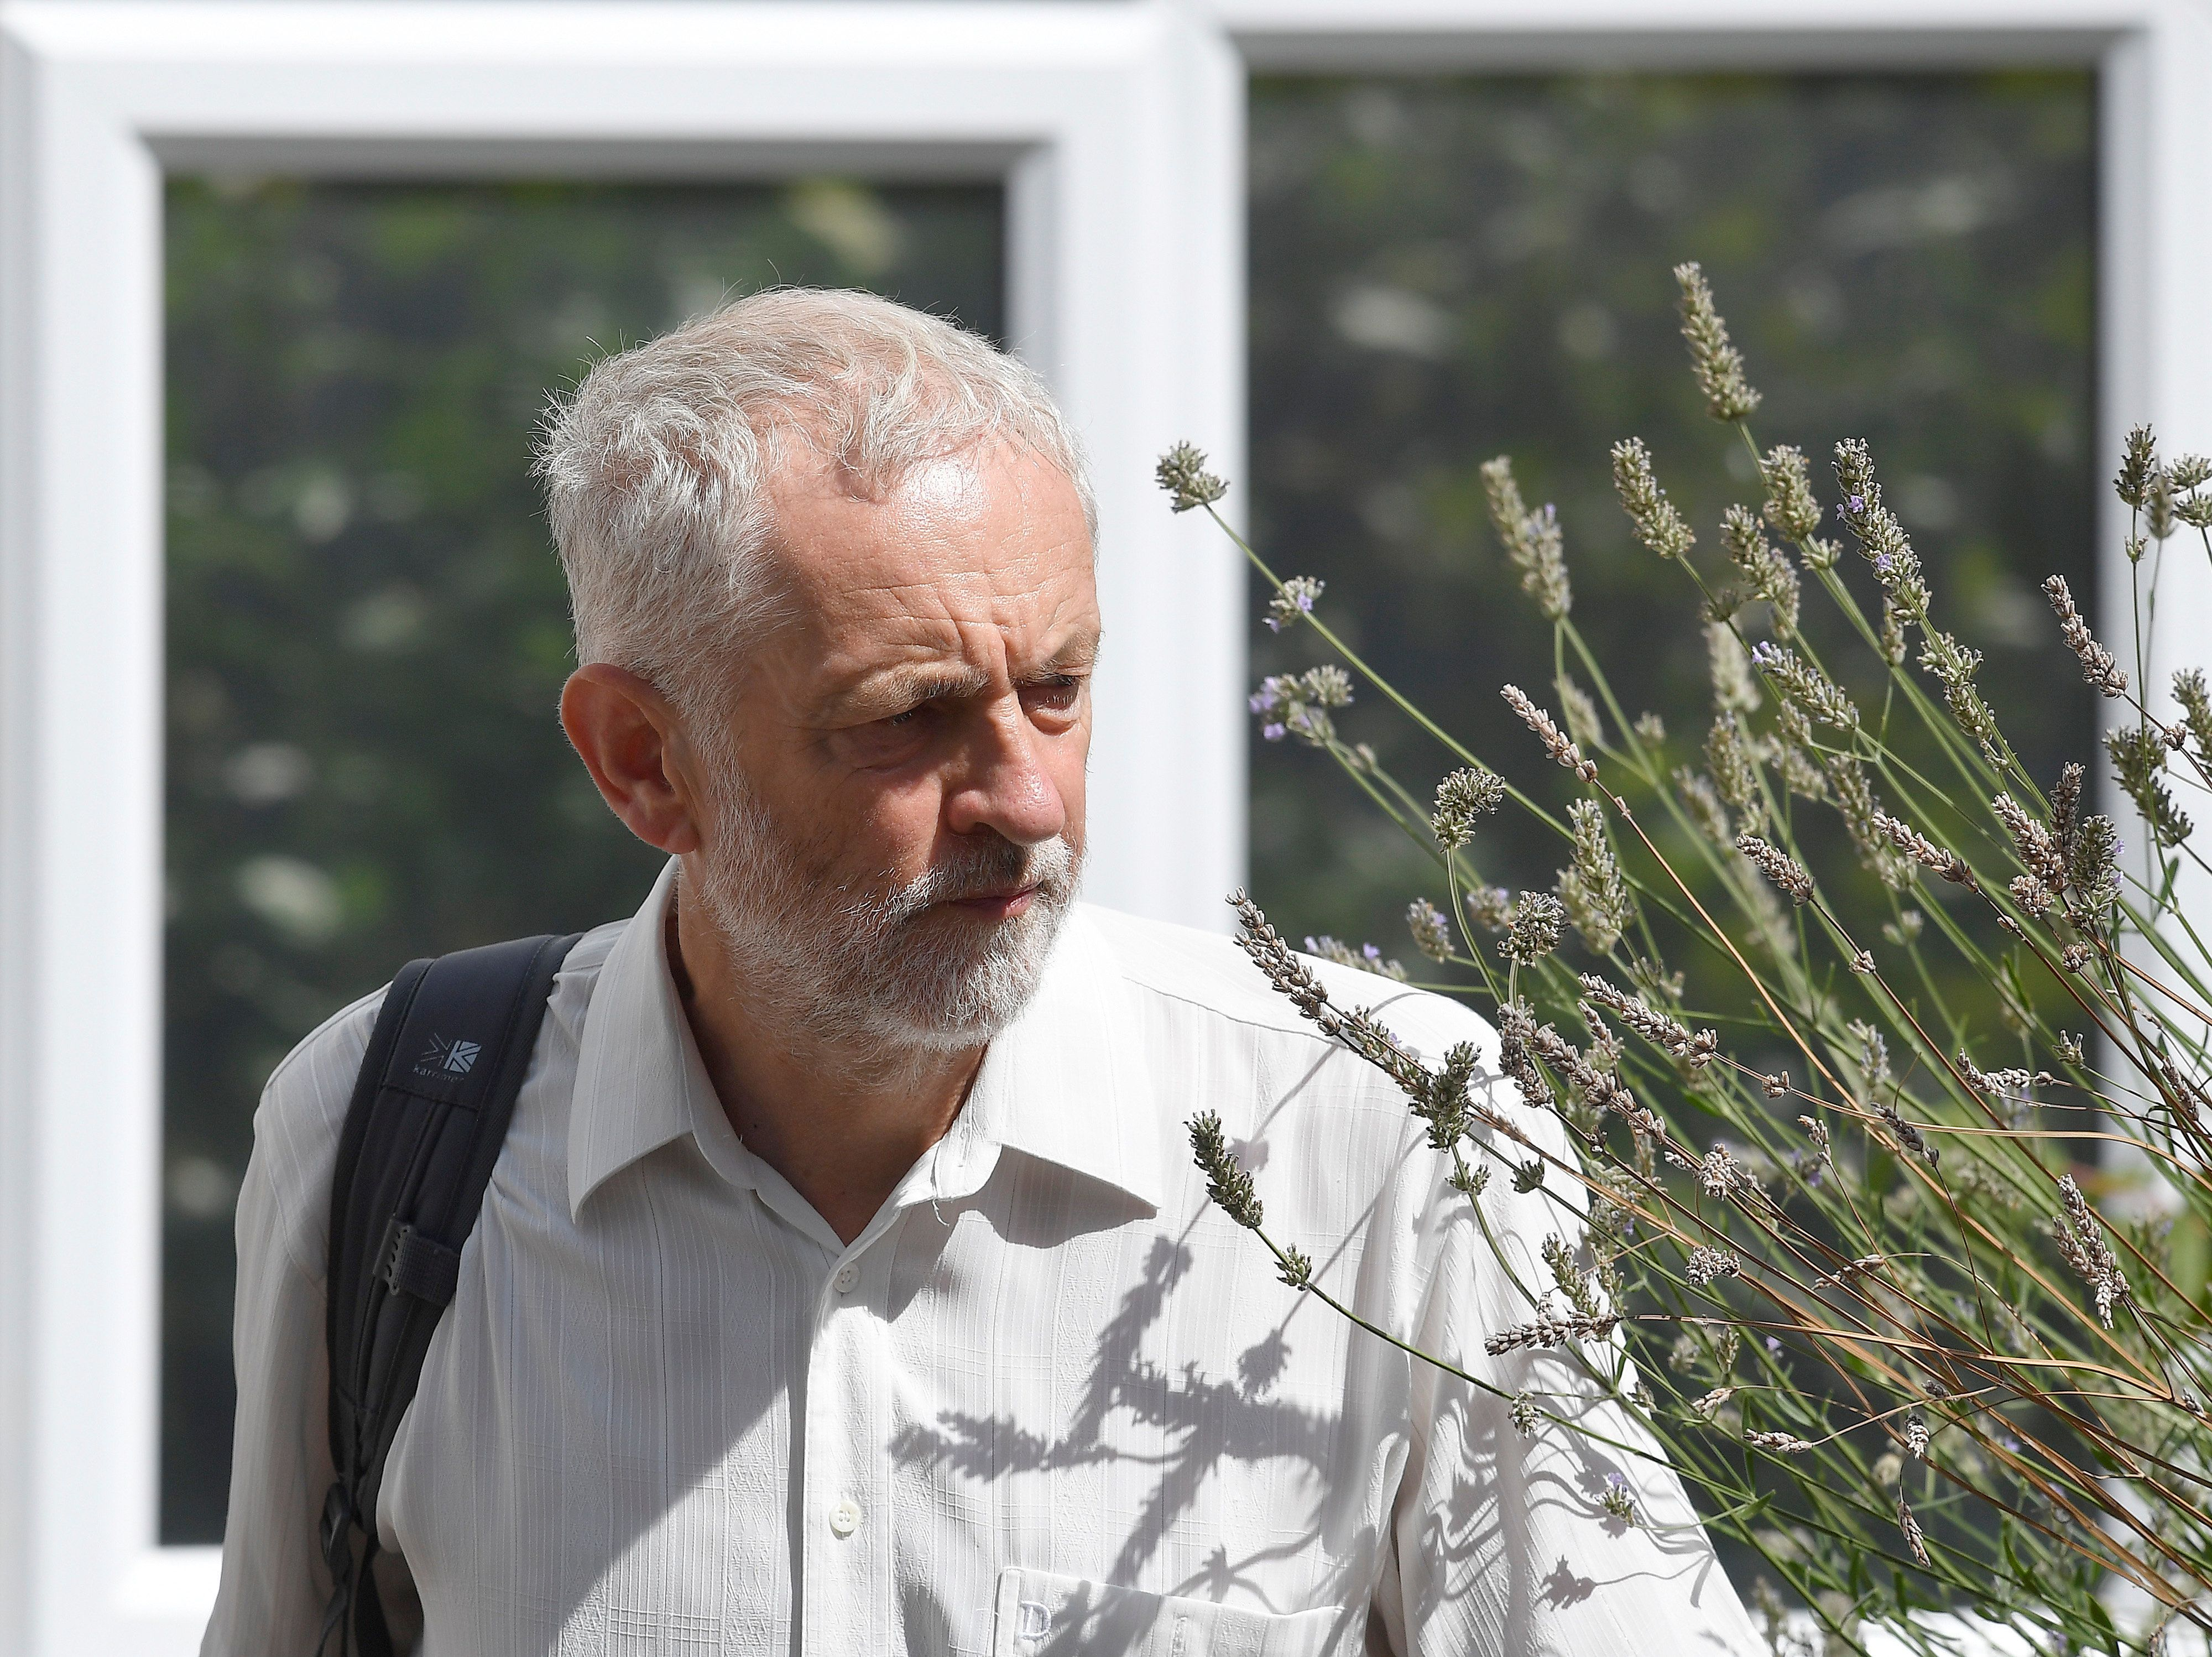 Sajid Javid Suggests Jeremy Corbyn Should Go Over Wreath Pictures